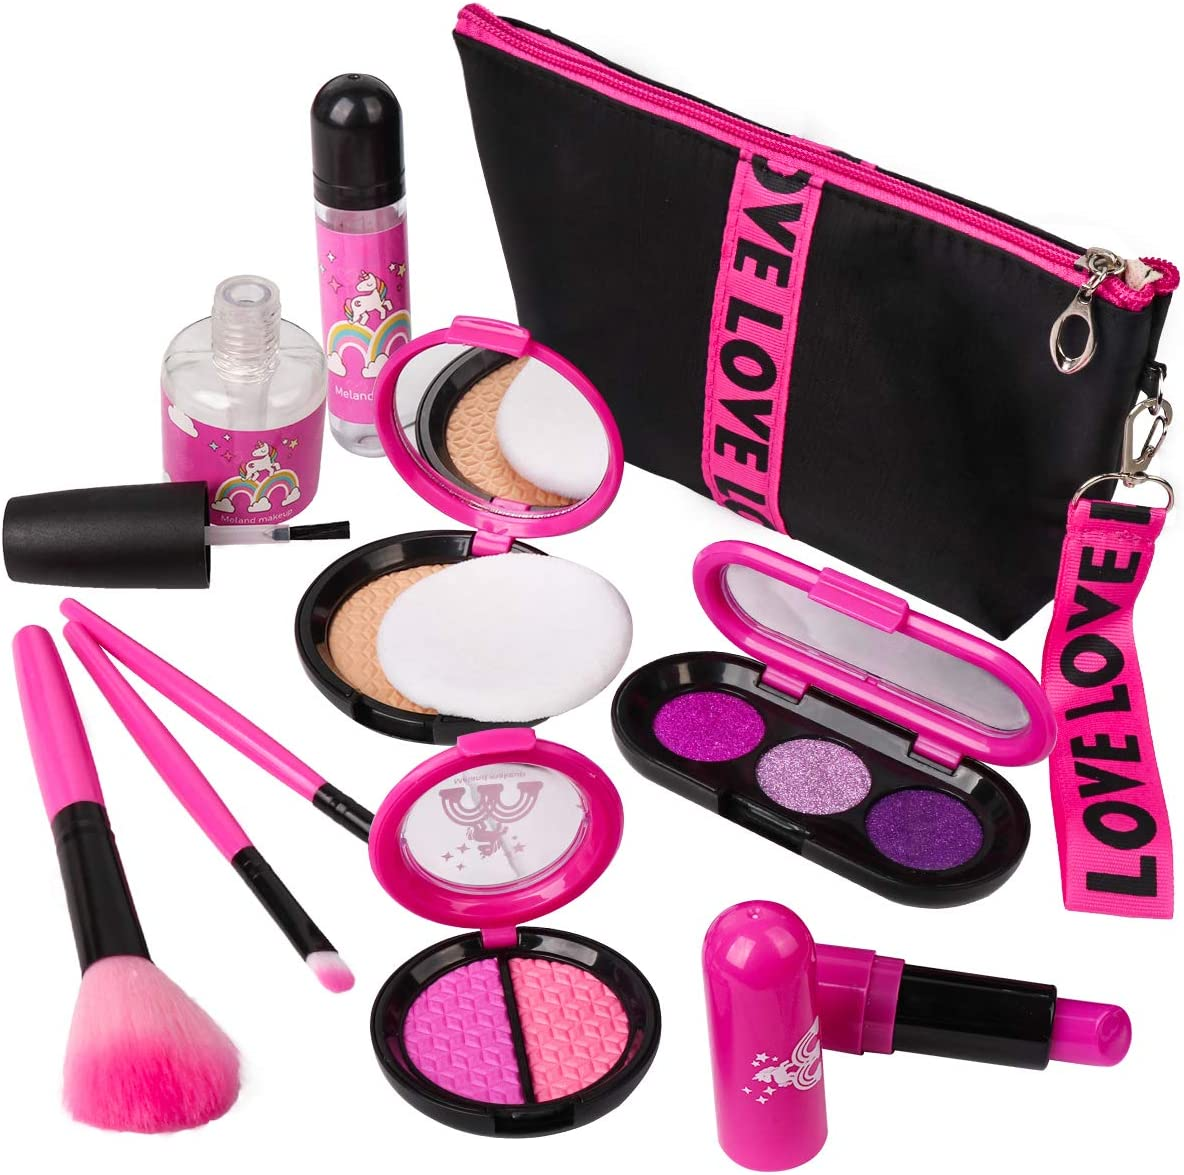 Girls Pretend Play Makeup Sets - LOYO Fake Make Up Kits with Cosmetic Bag for Little Girls Birthday Christmas Holiday Gift, Toy Makeup Set for Toddler Girls Age 2, 3, 4, 5 (Not Real Makeup)